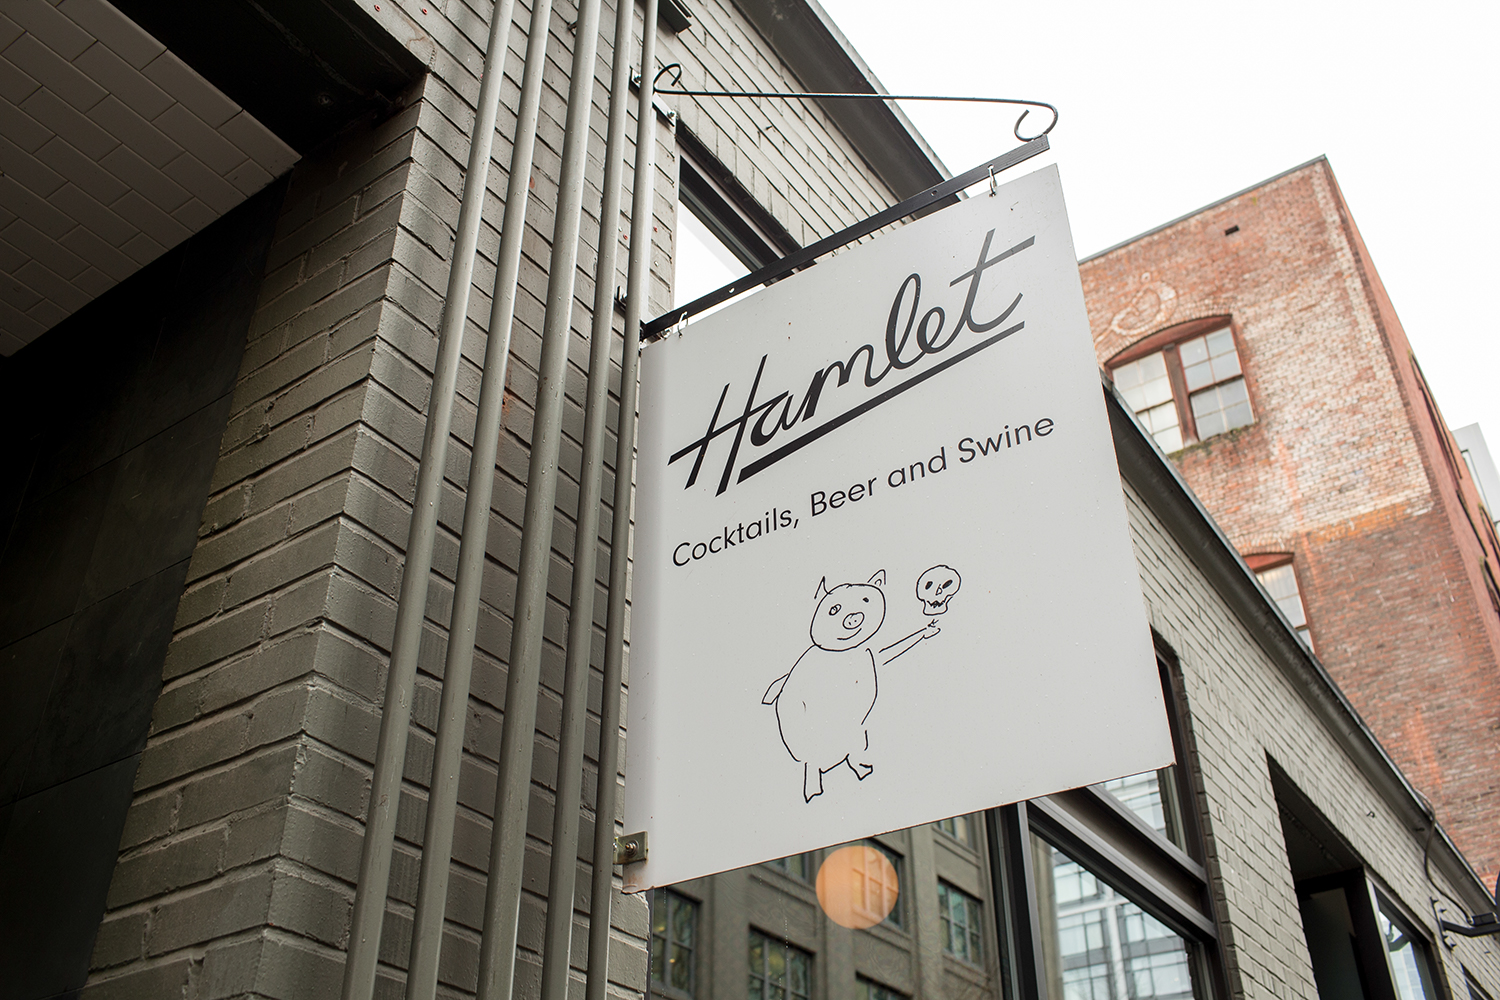 Hamlet sign along NW 12 Avenue. (image courtesy of Hamlet)